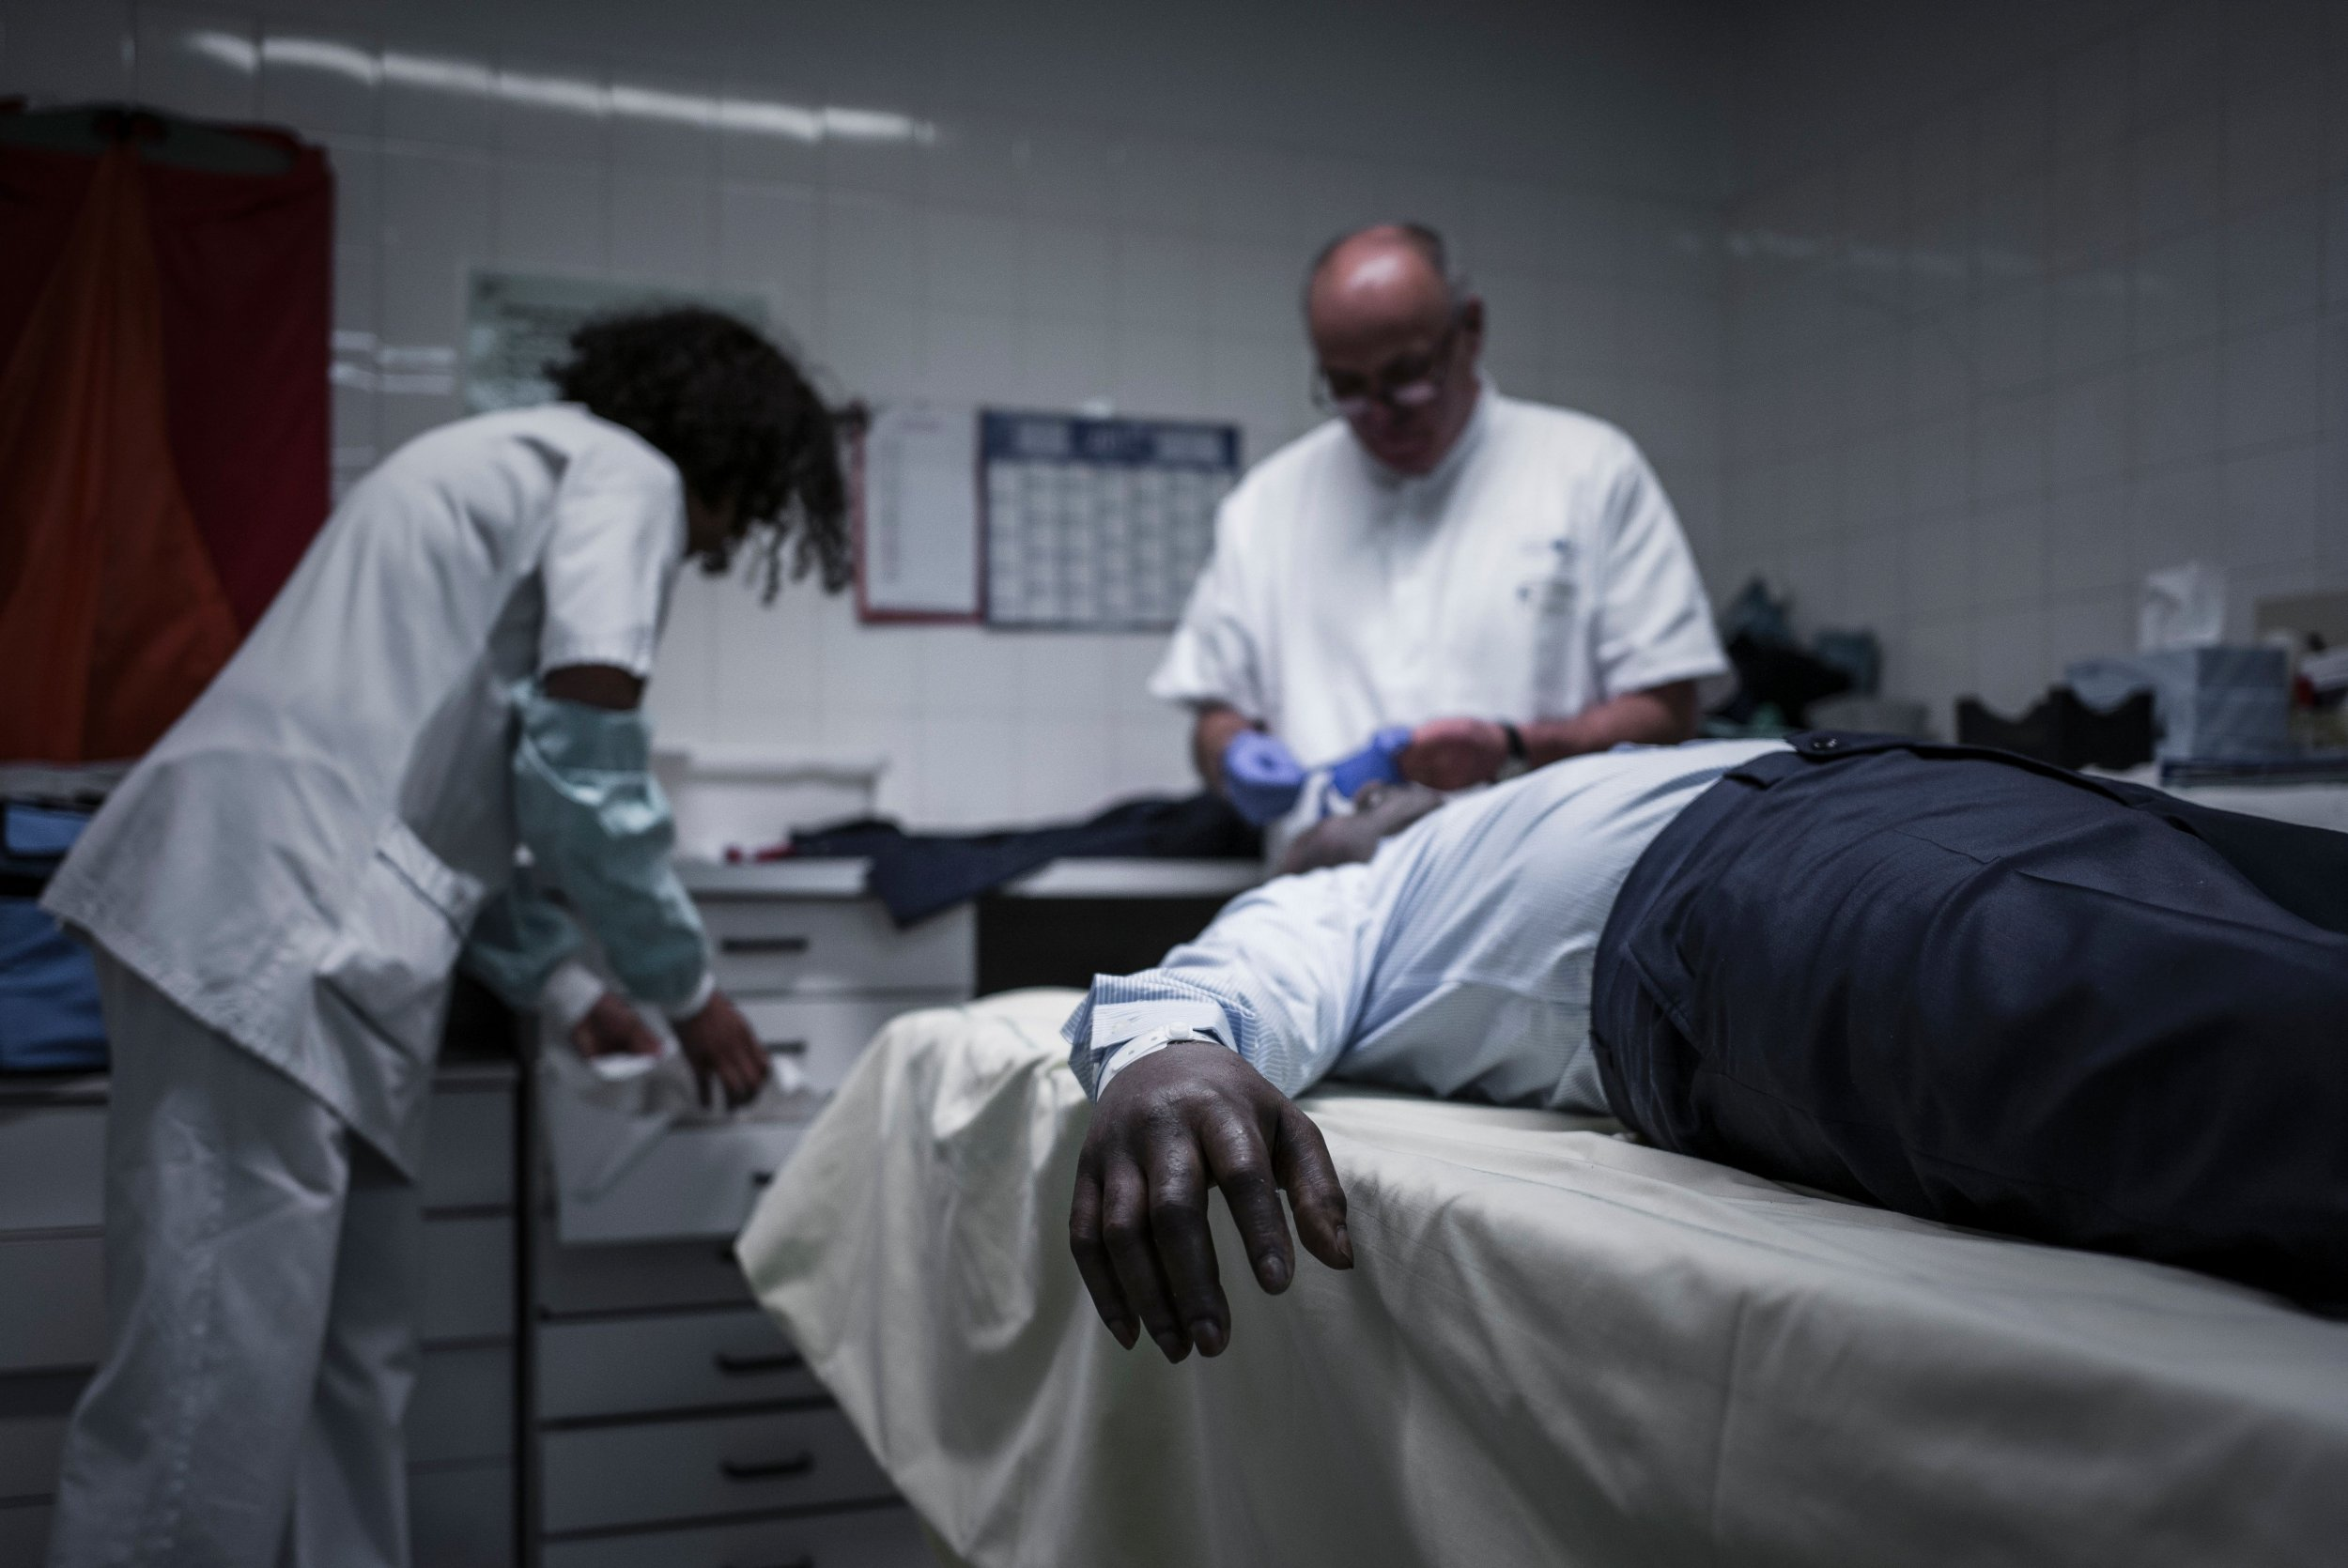 Dead Man Wakes Up on Autopsy Table Right Before Doctor Starts Procedure